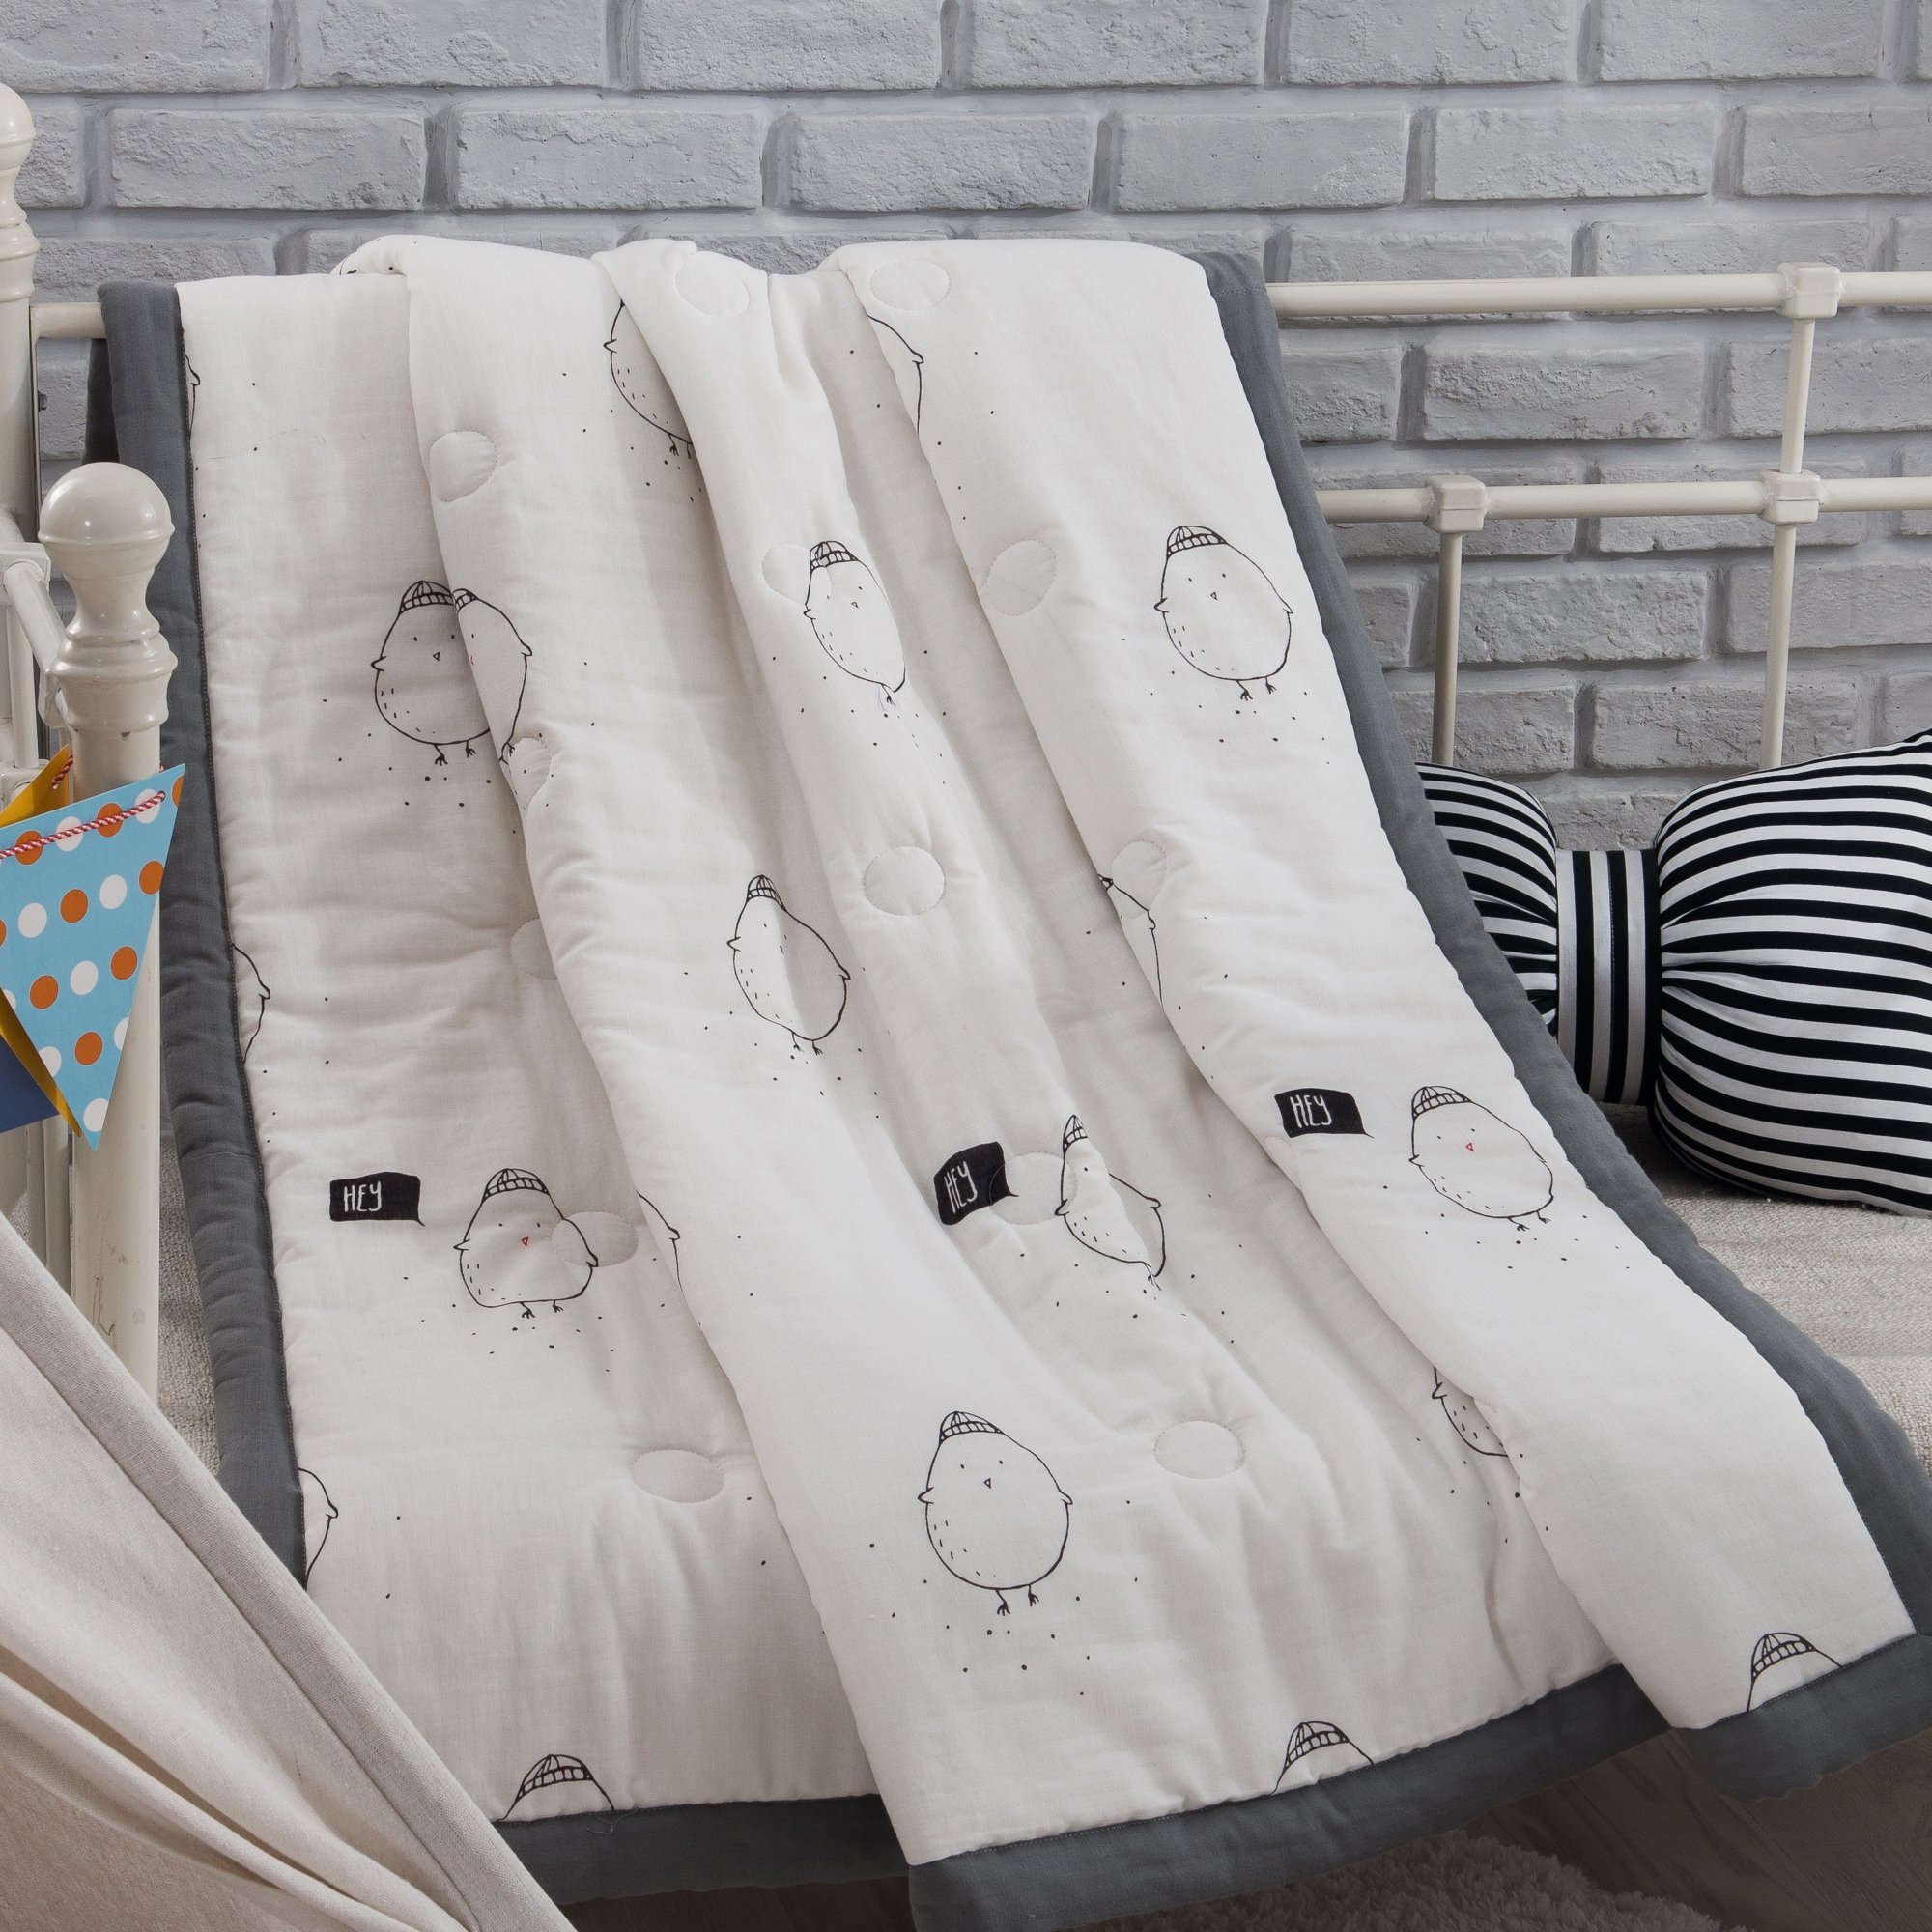 J-pinno Boys & Girls Cute Chick Muslin Quilt Comforter Bedding Coverlet, 100% Long Staple Cotton, Throw Blanket Twin/Full for Kid's Bedroom Decoration Gift (Full 78'' X 90'', chicken)